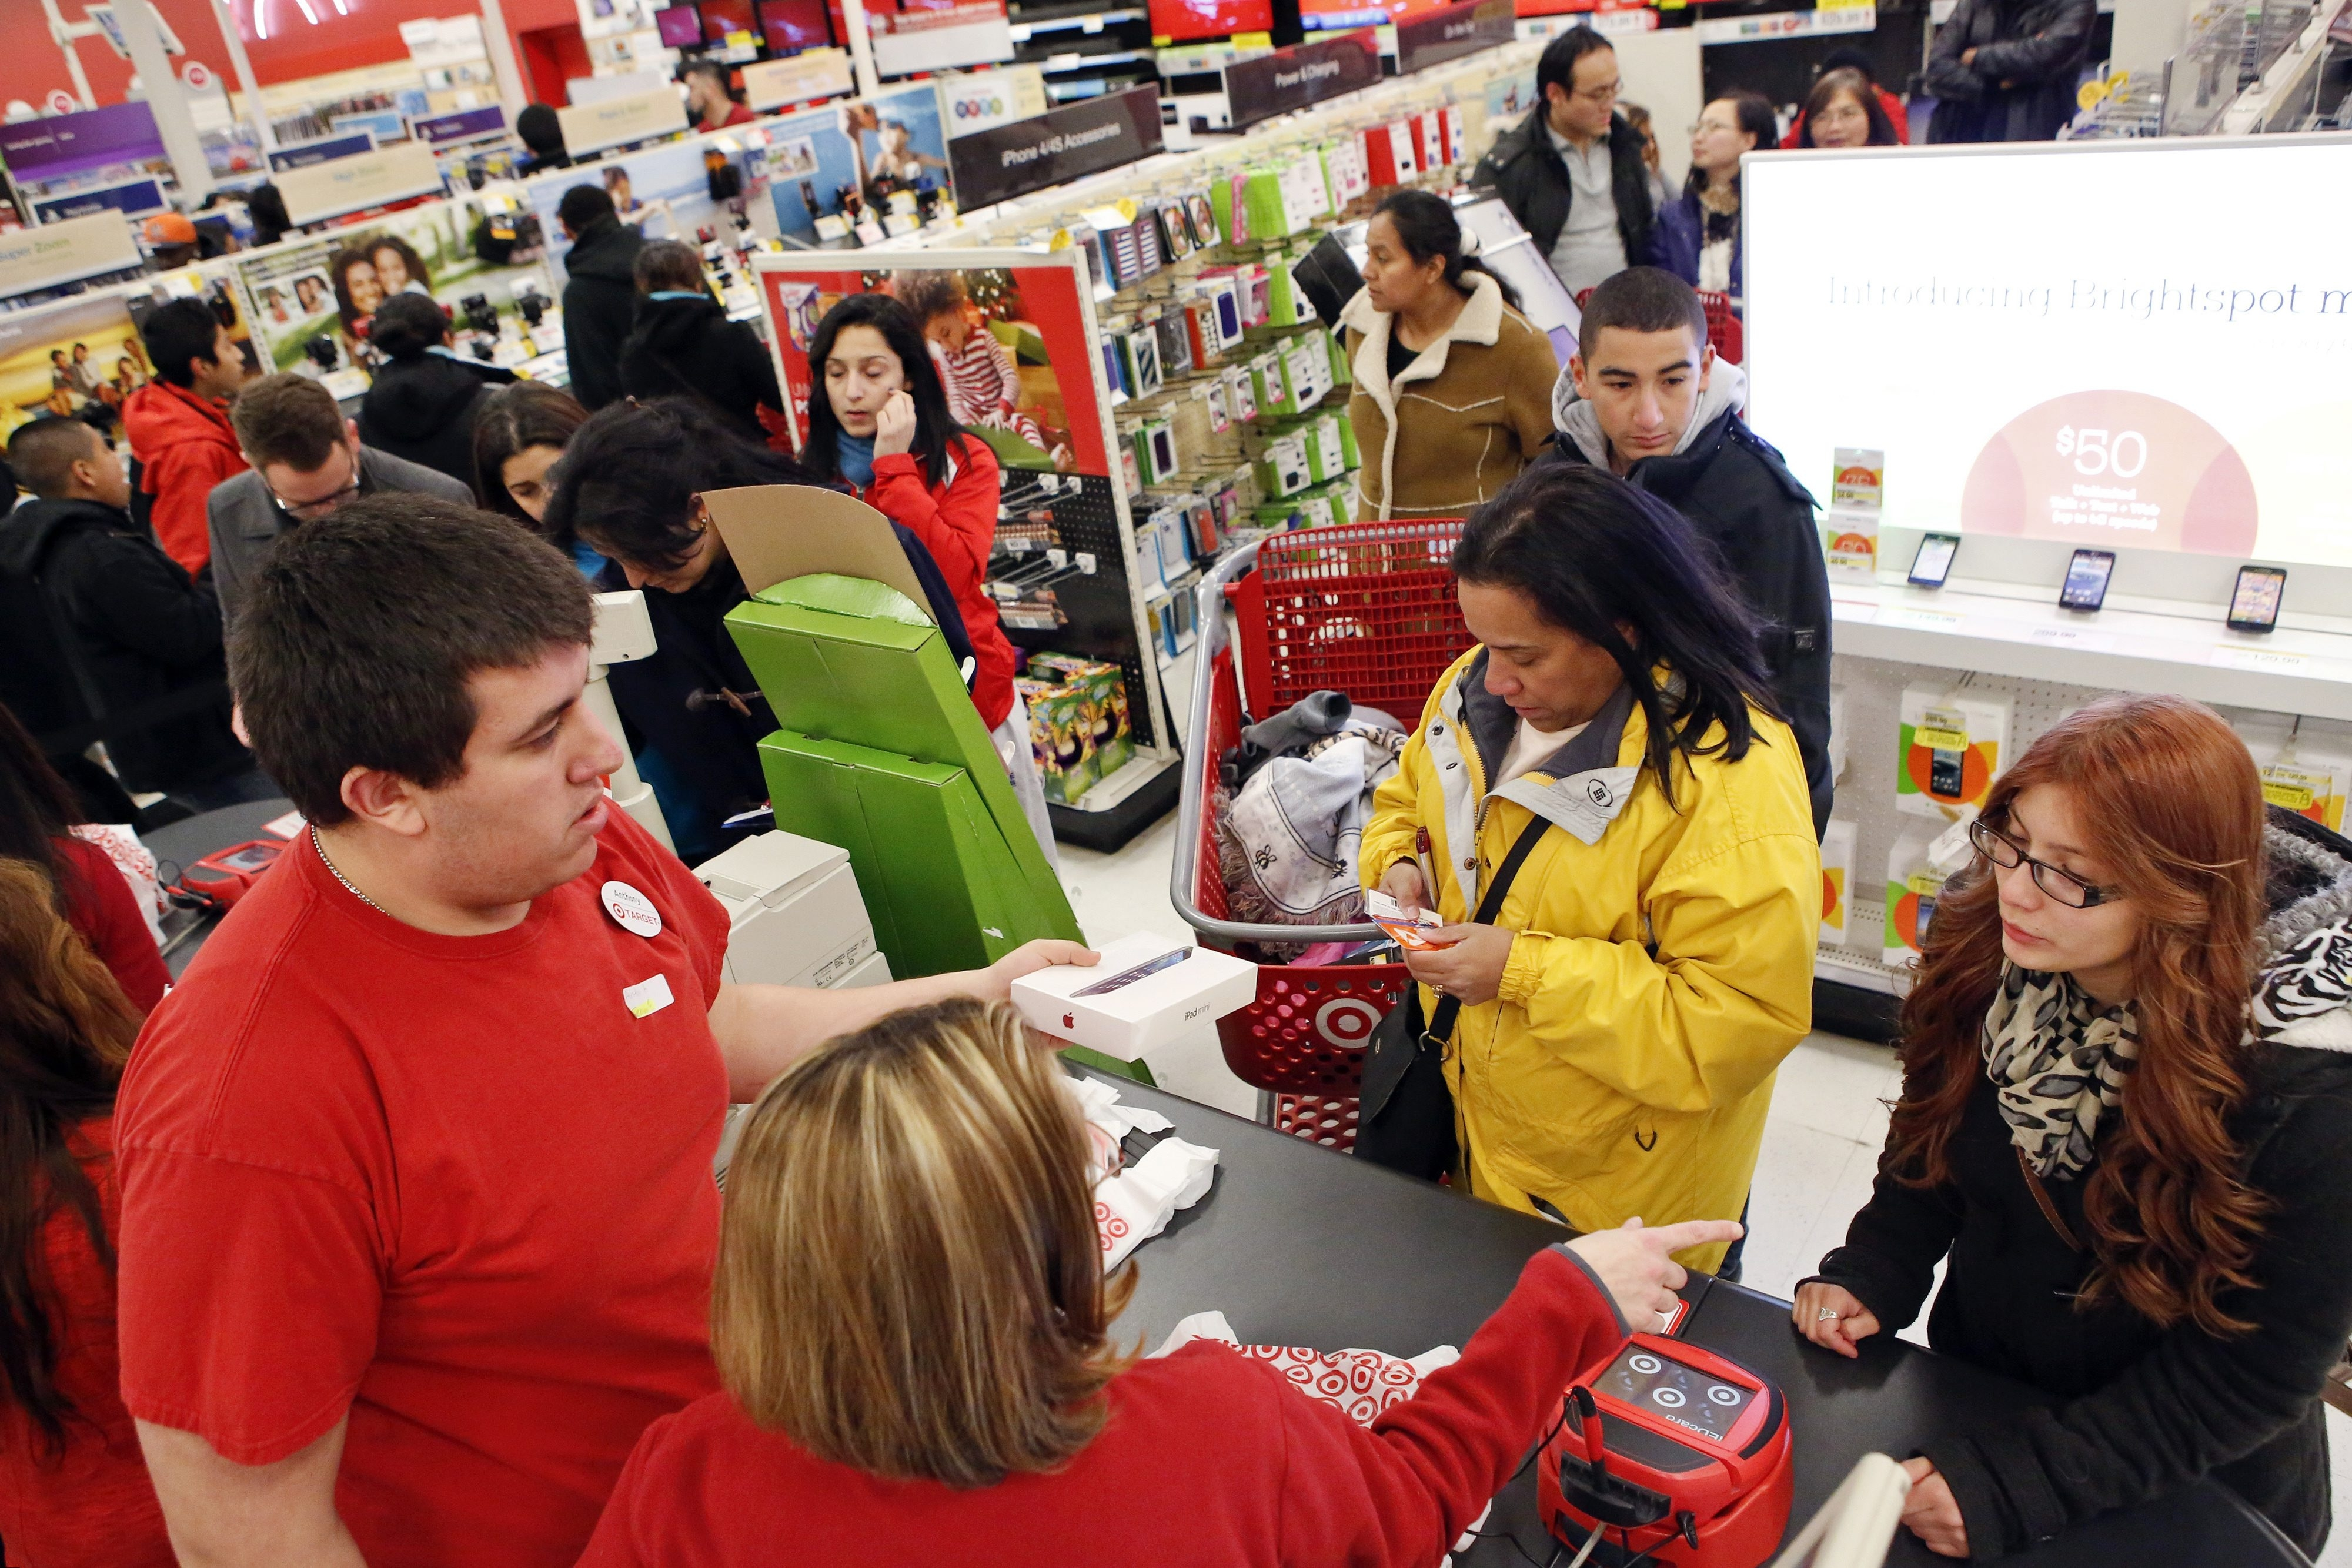 Target has revealed that personal information stolen in a widespread data hack during the holiday season could total 110 million people instead of the 70 million first estimated.